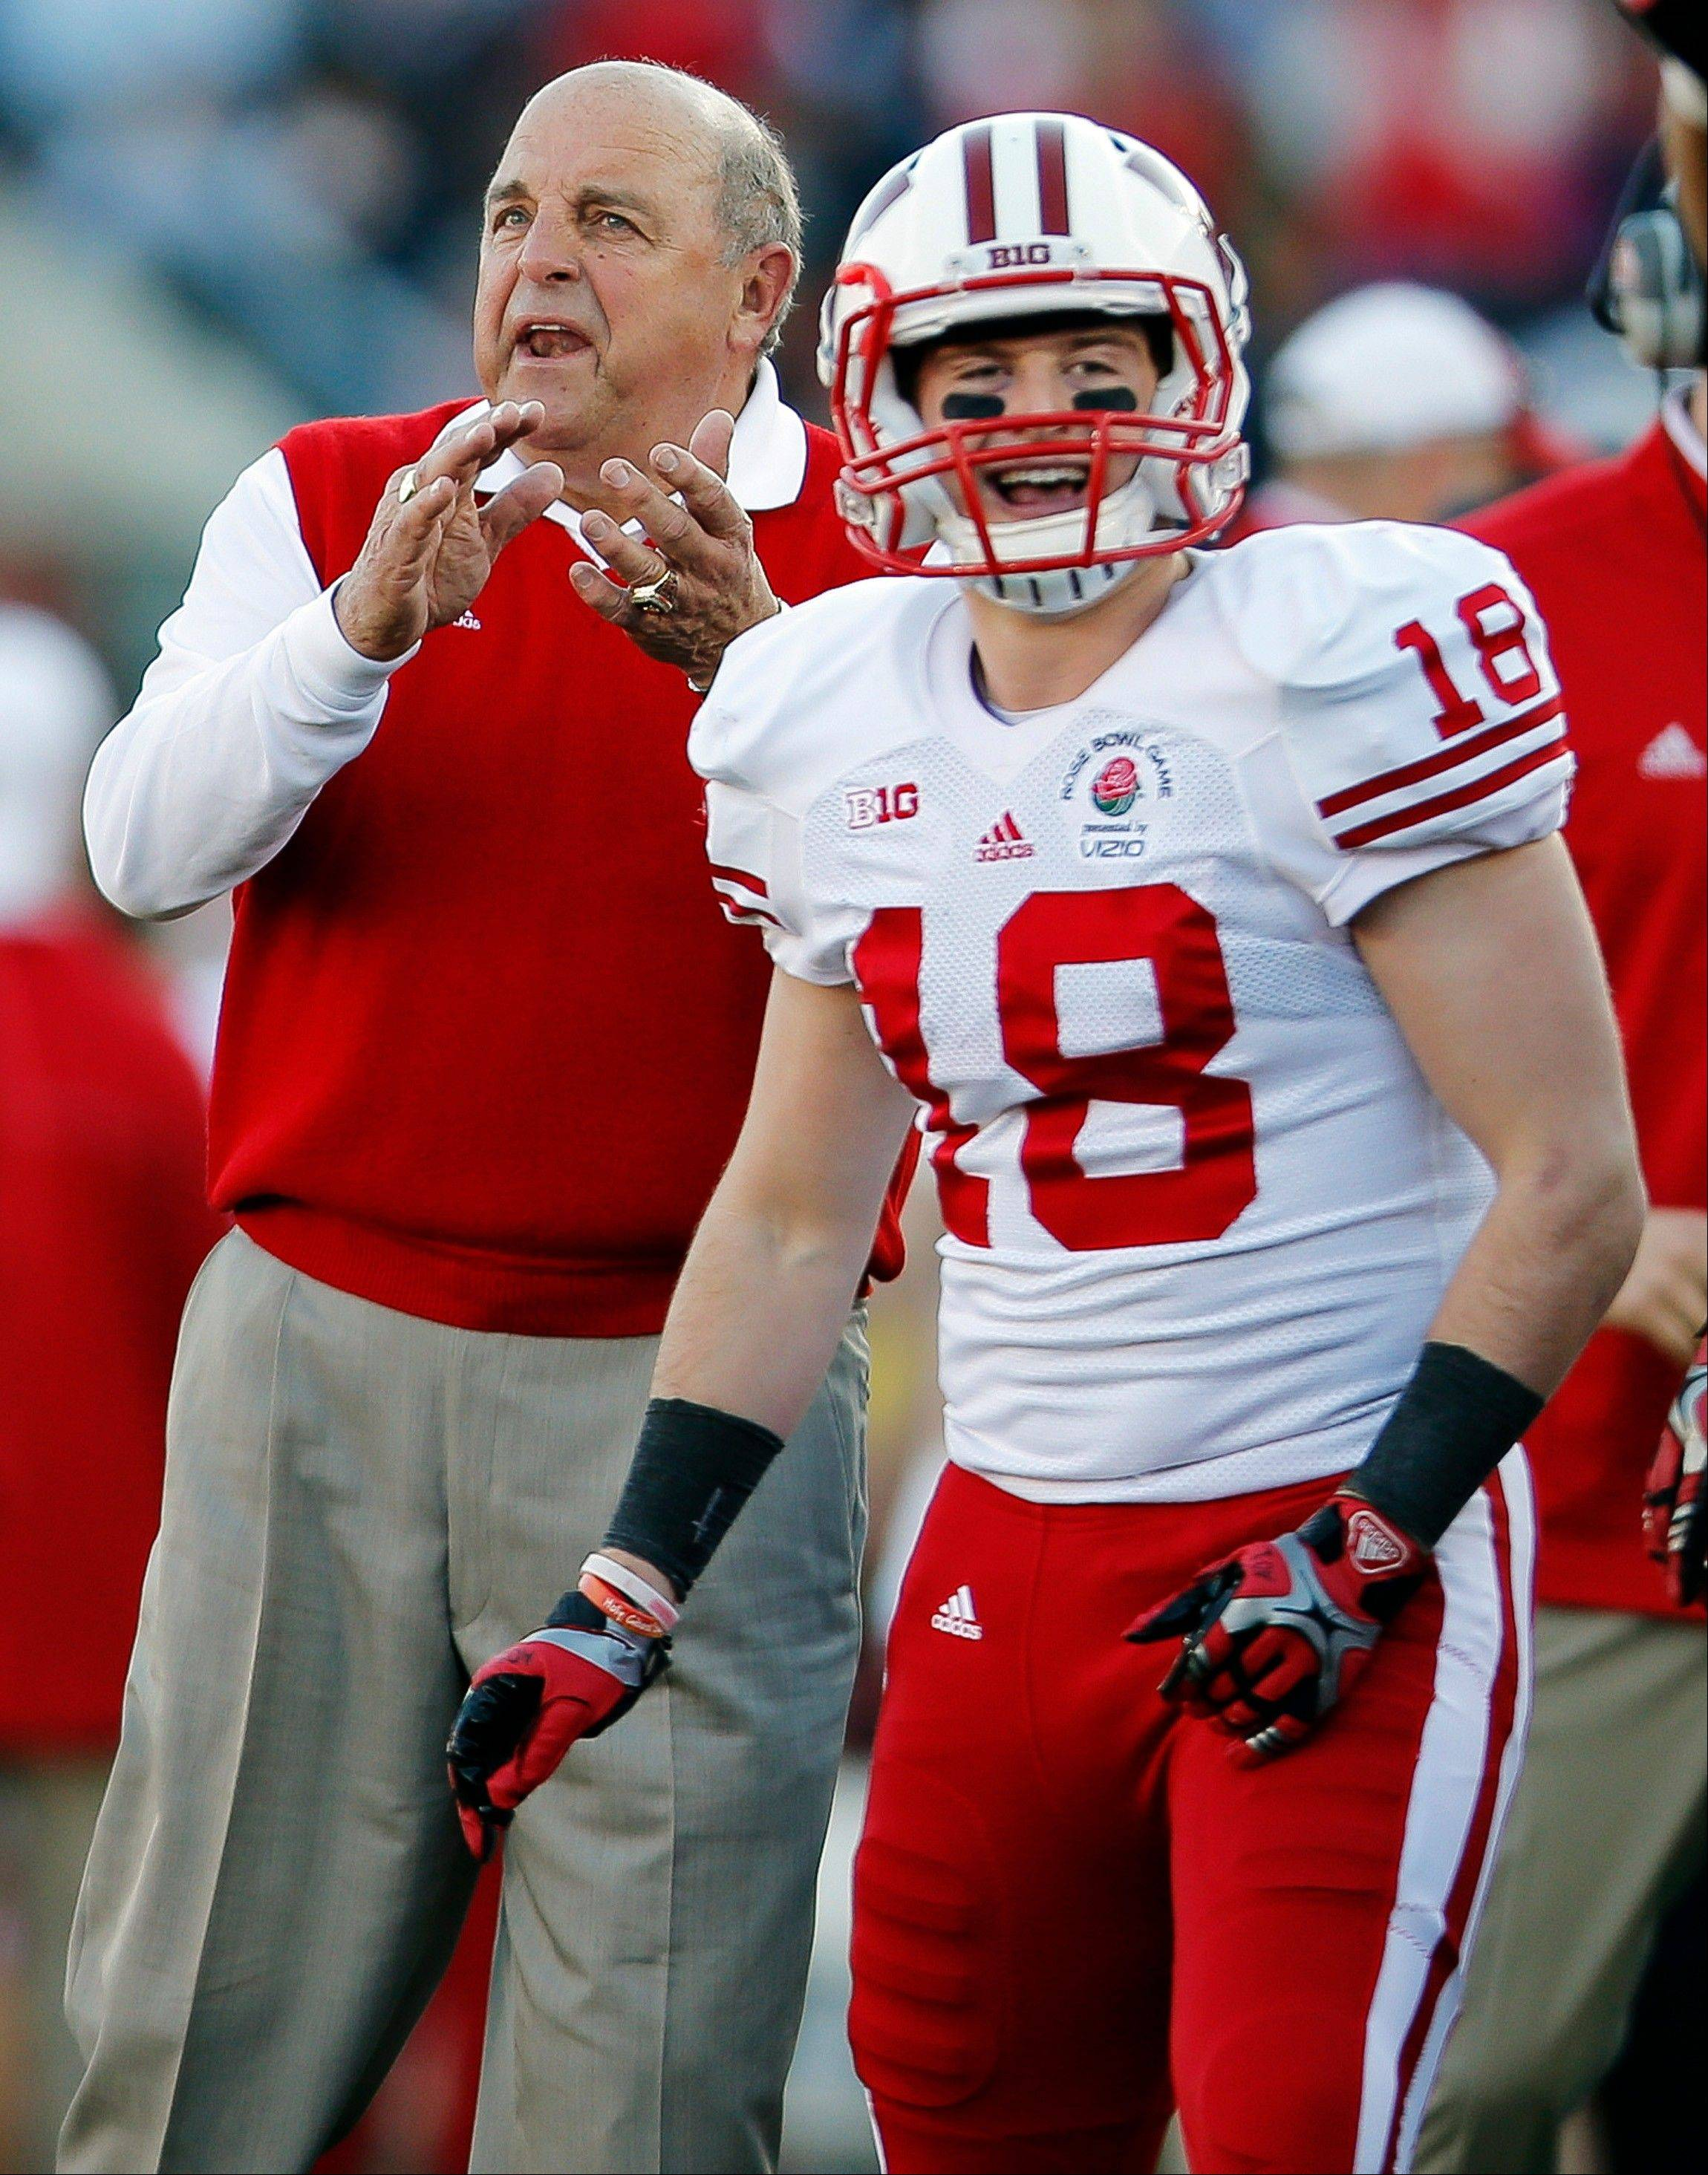 Wisconsin left coach Barry Alvarez, left, and wide receiver Lance Baretz (18) reacts after a touchdown during the first half of the Rose Bowl NCAA college football game against Stanford, Tuesday, Jan. 1, 2013, in Pasadena, Calif.